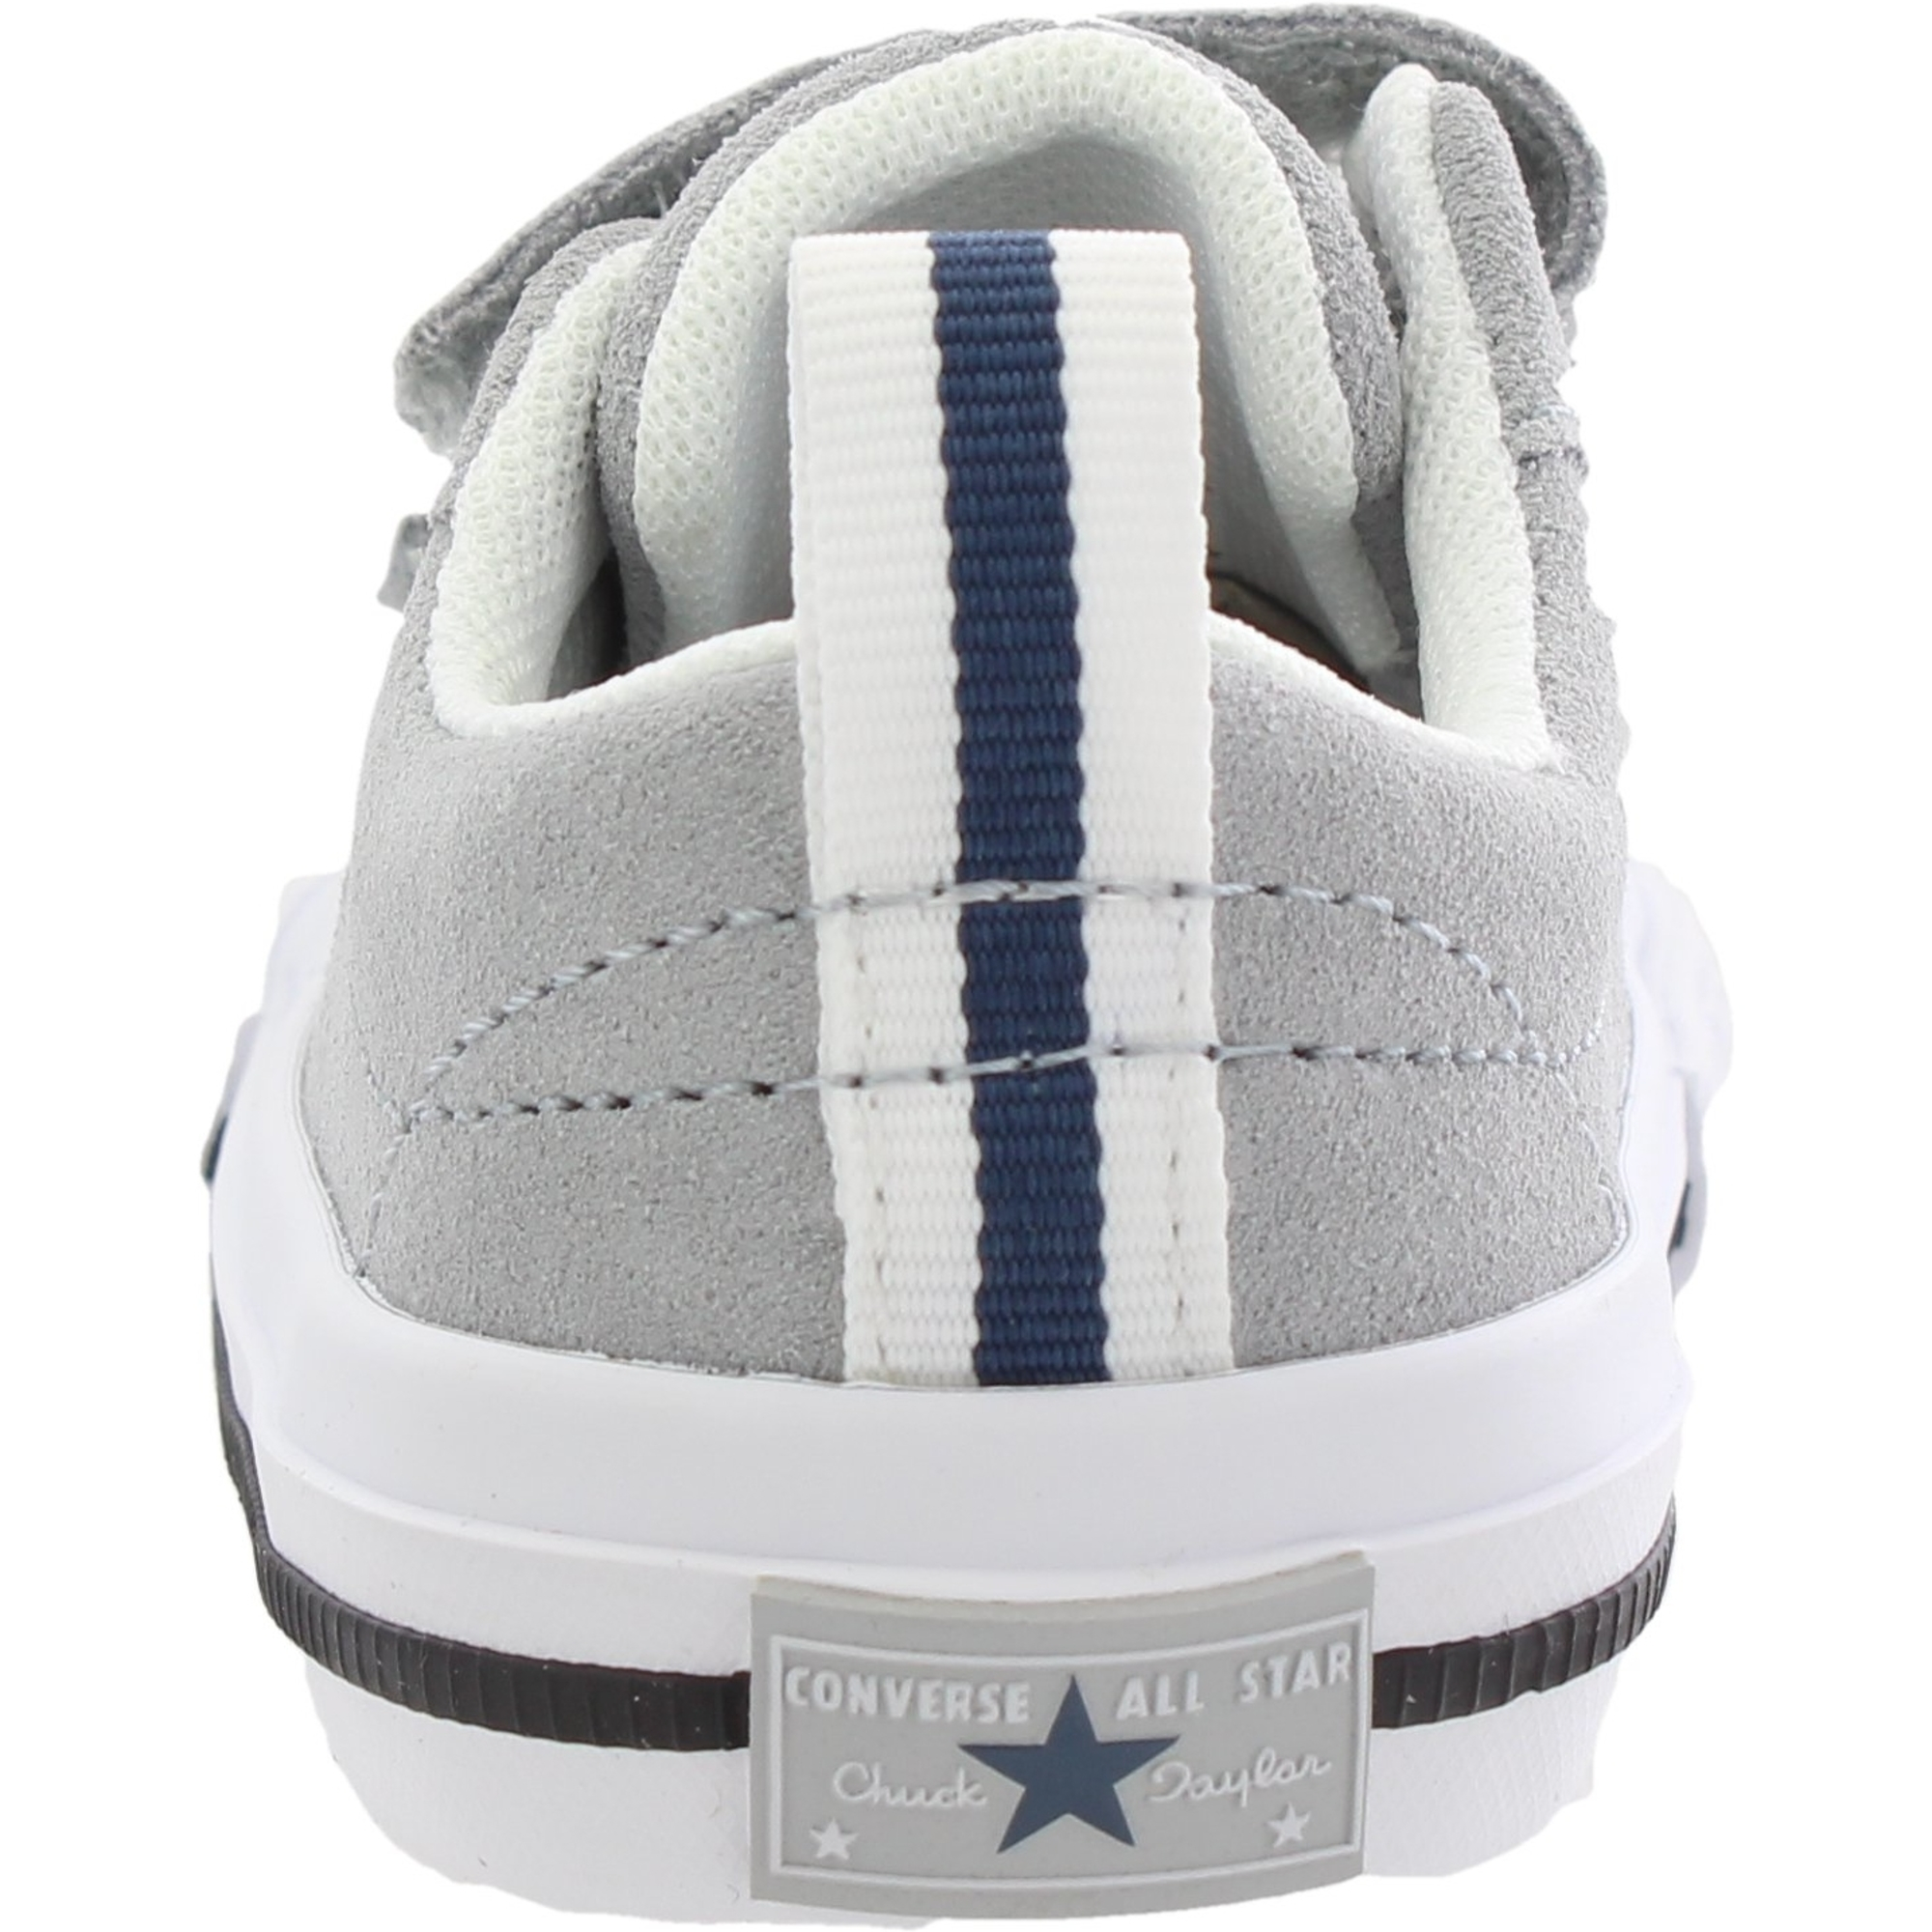 Converse One Star 2V Wolf Gray Suede Baby